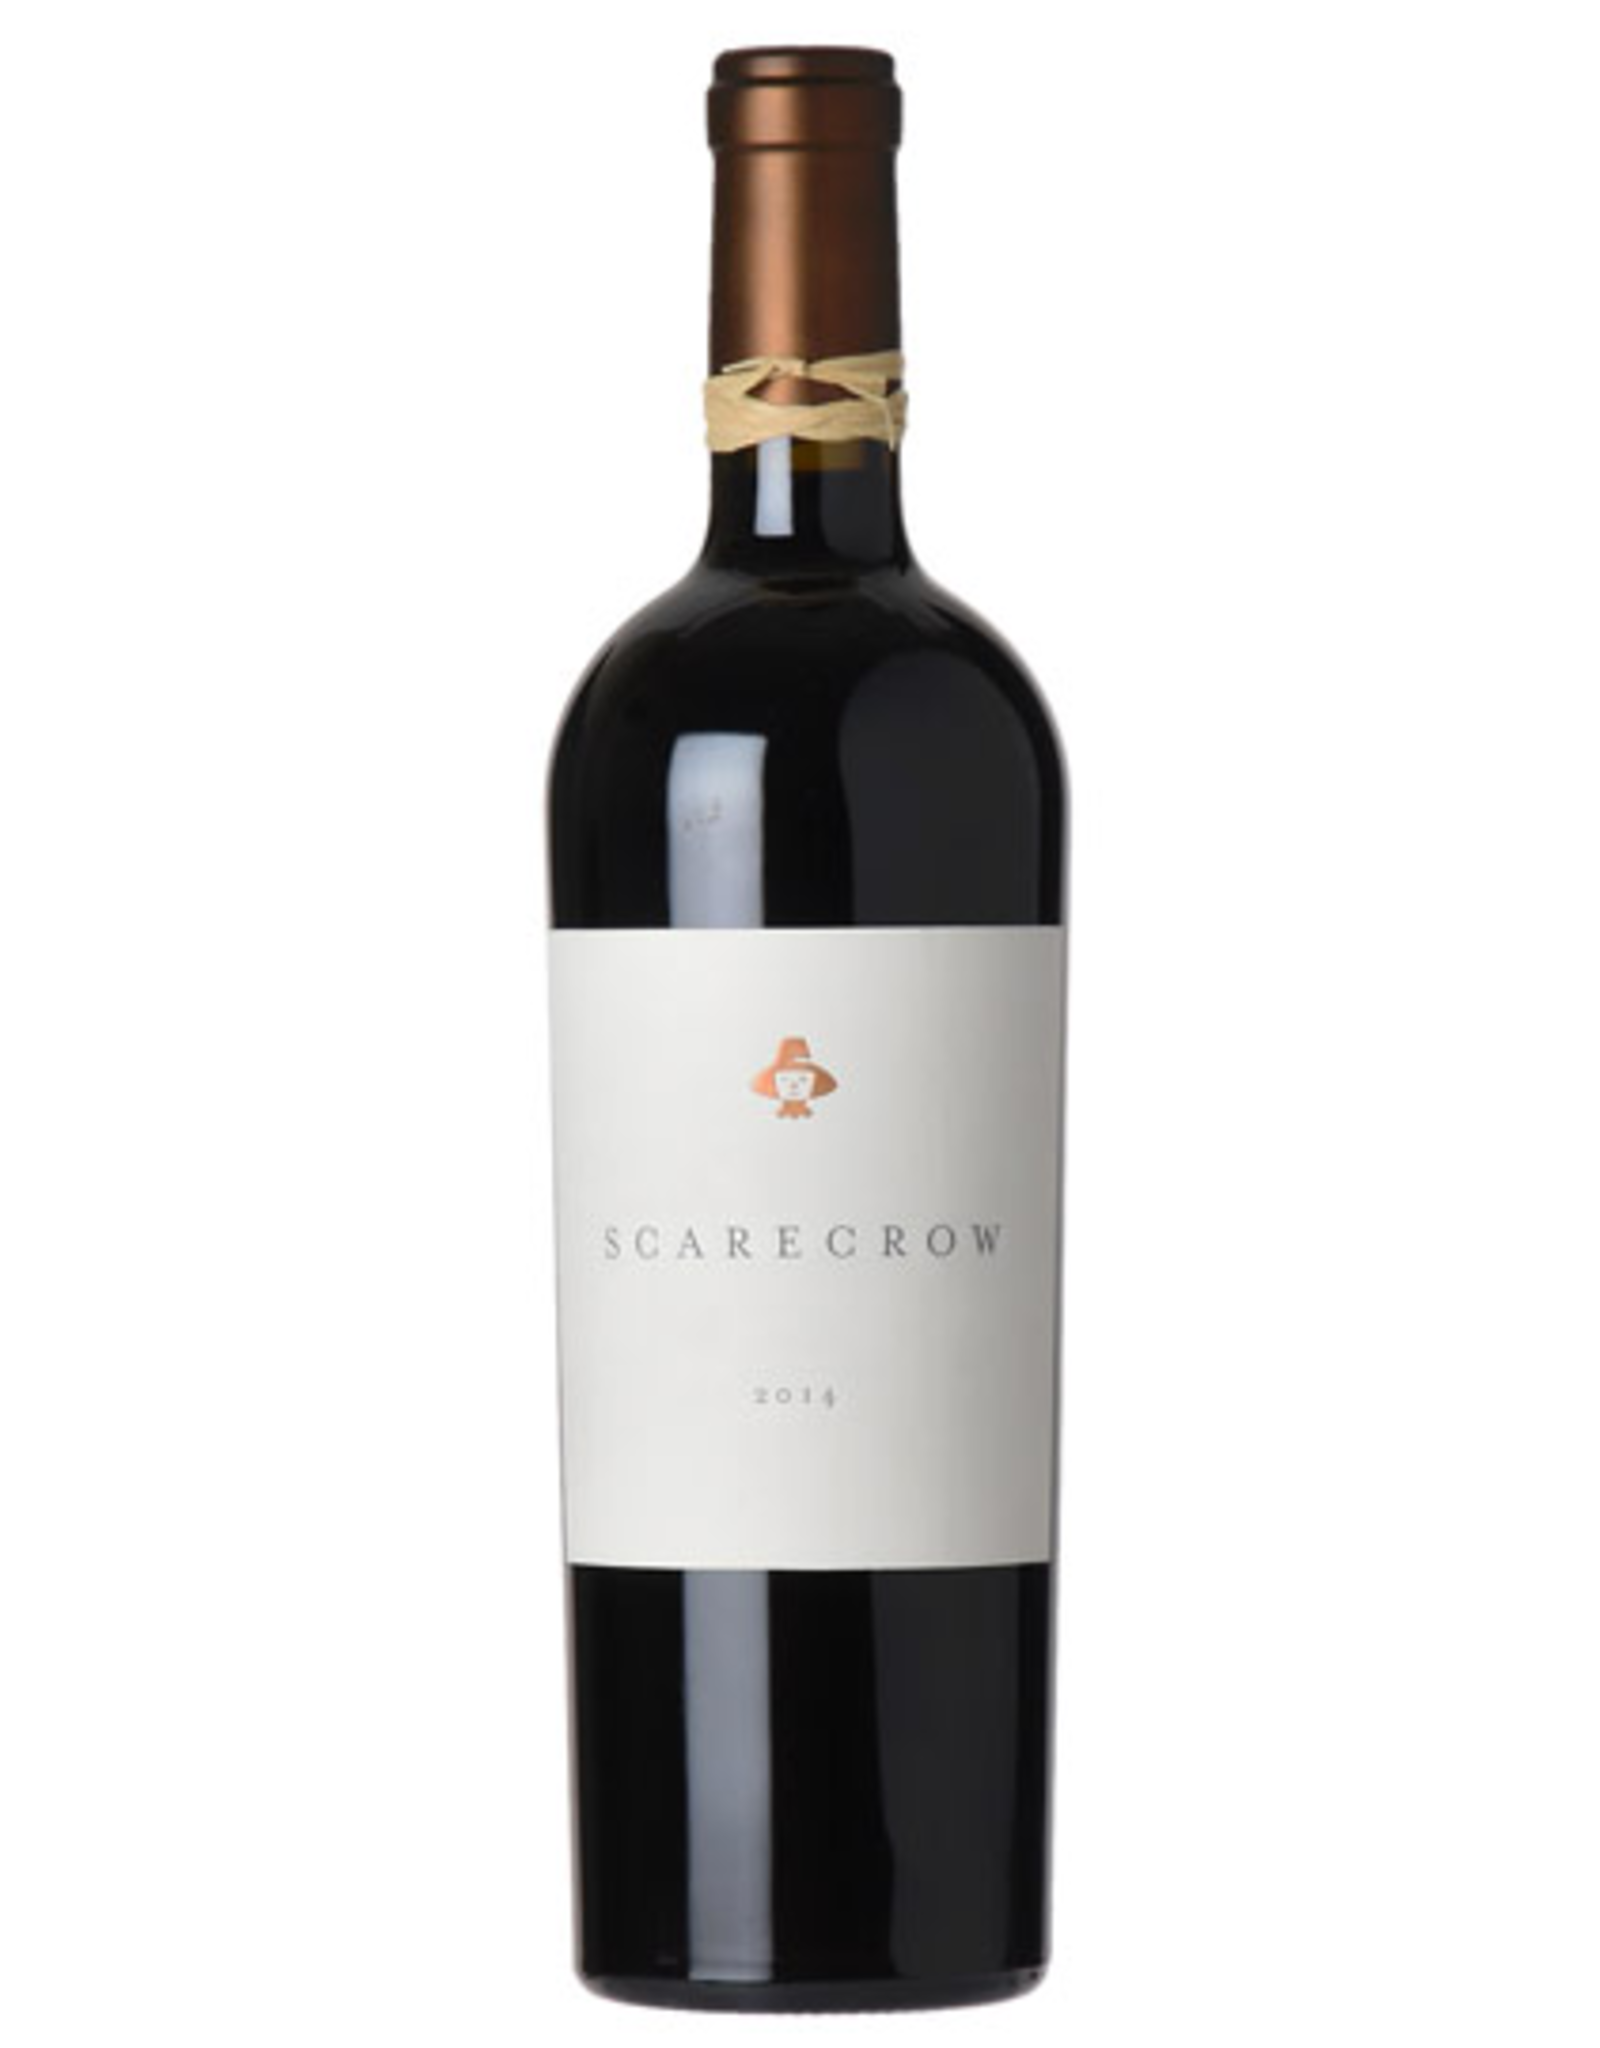 Red Wine 2014, Scarecrow, Cabernet Sauvignon, Rutherford, Napa Valley, California, 14.9% Alc, CT96, RP100